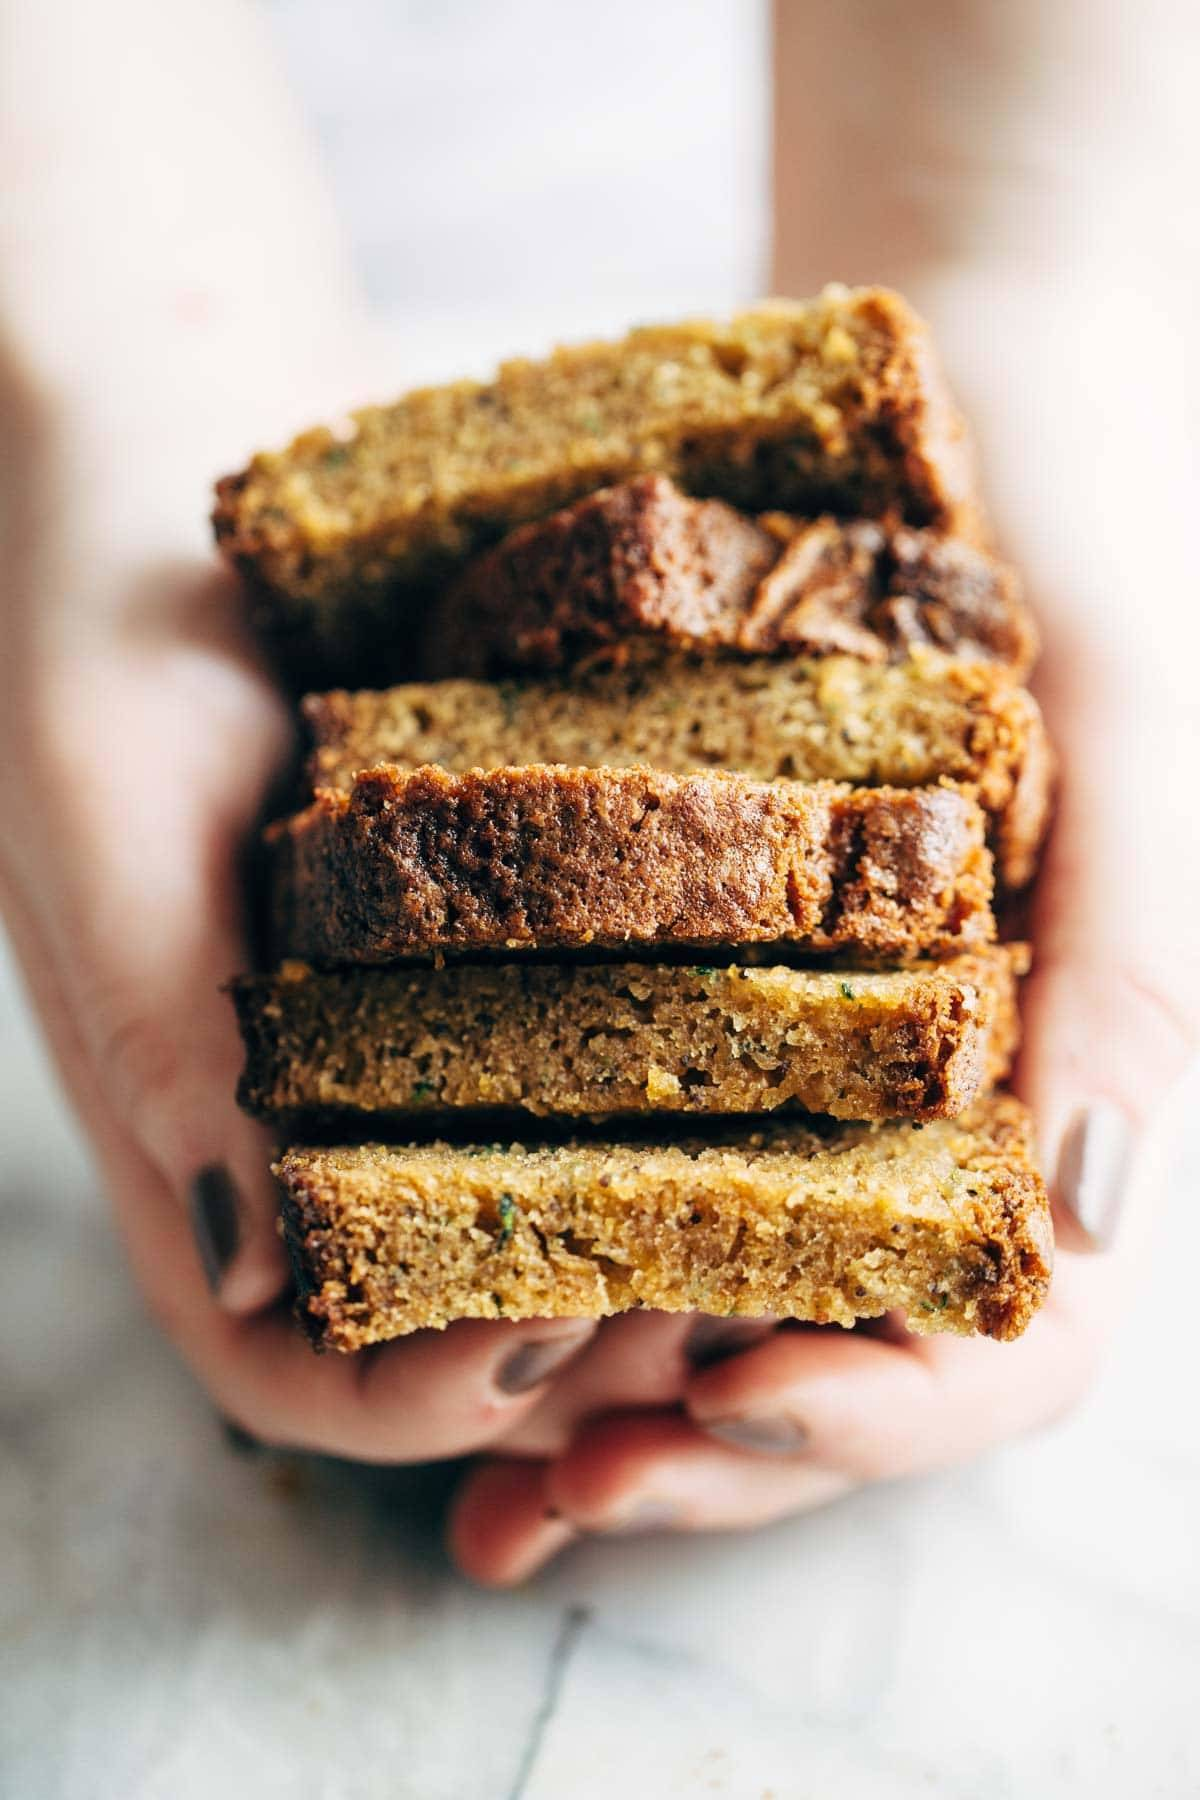 Hands holding lemon olive oil cake.